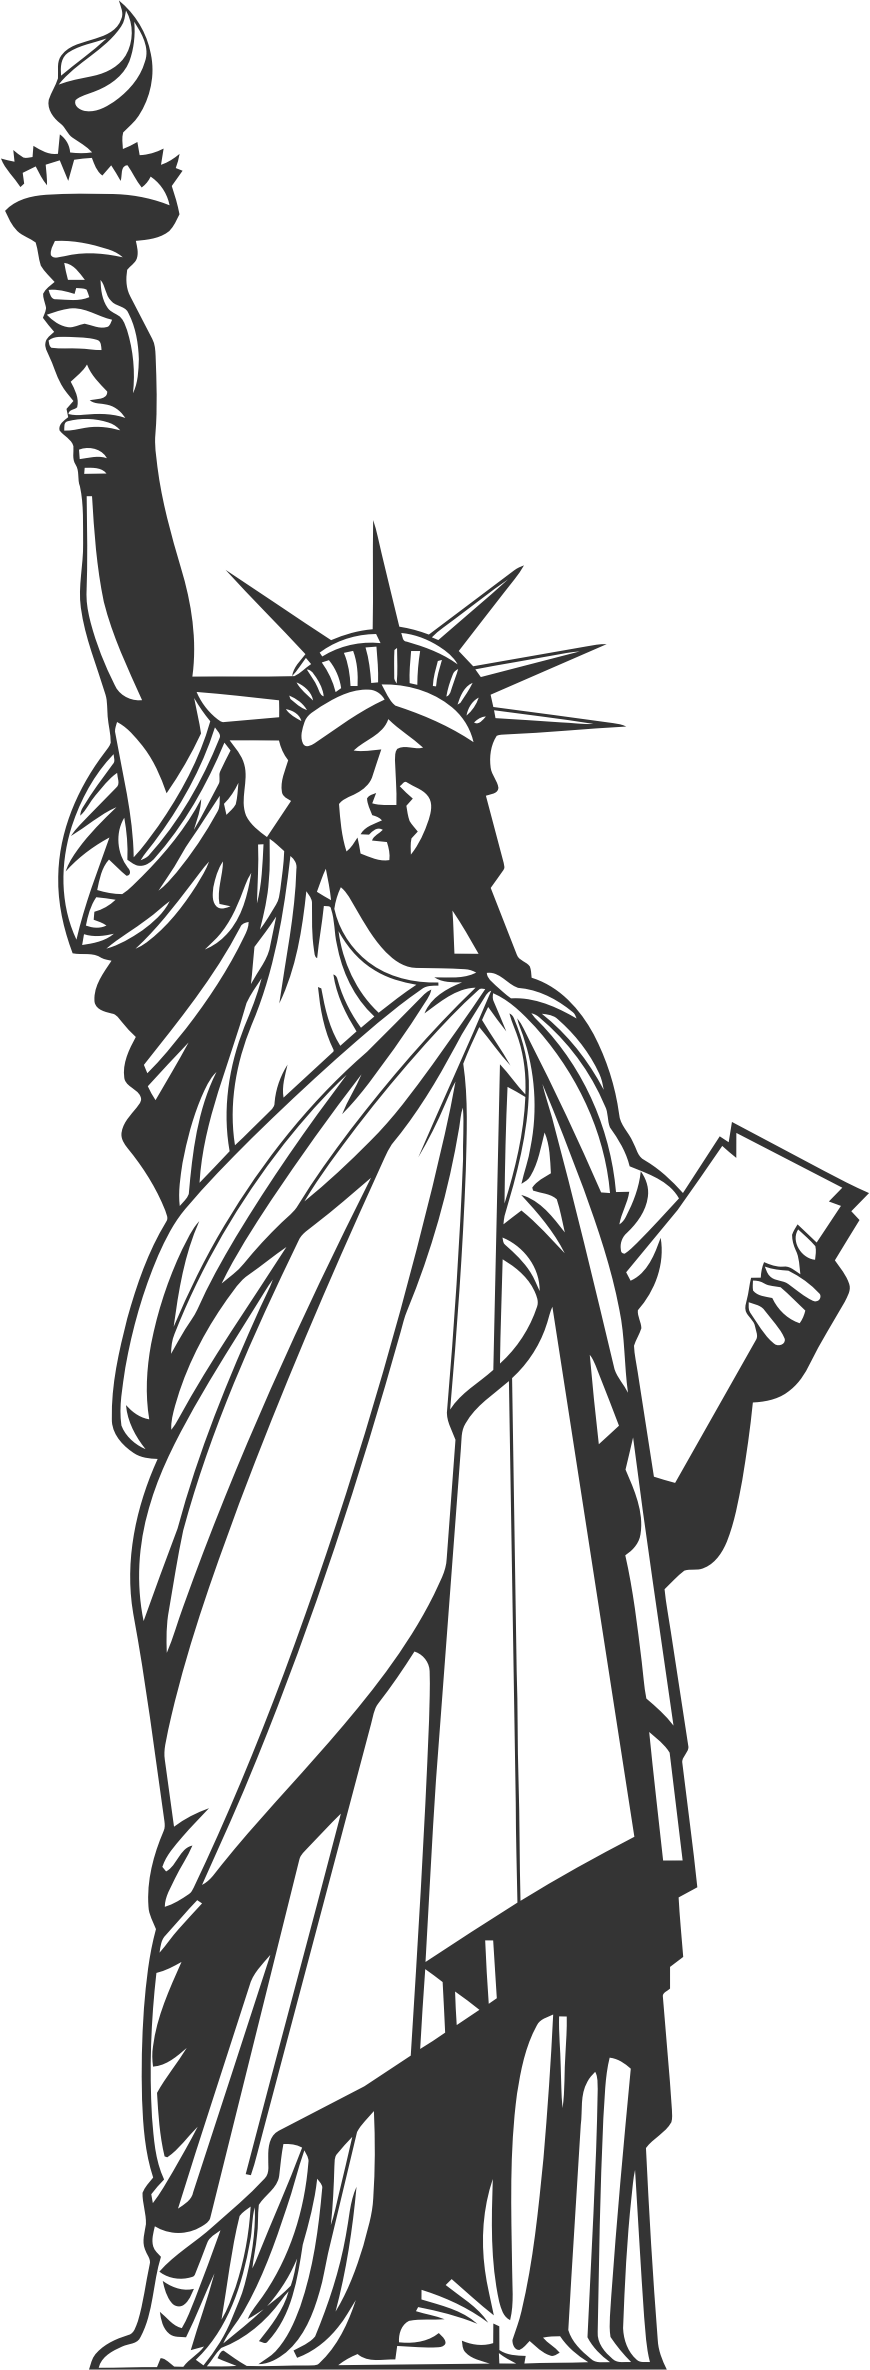 statue of liberty drawings how to draw the statue of liberty step by step pictures drawings liberty statue of